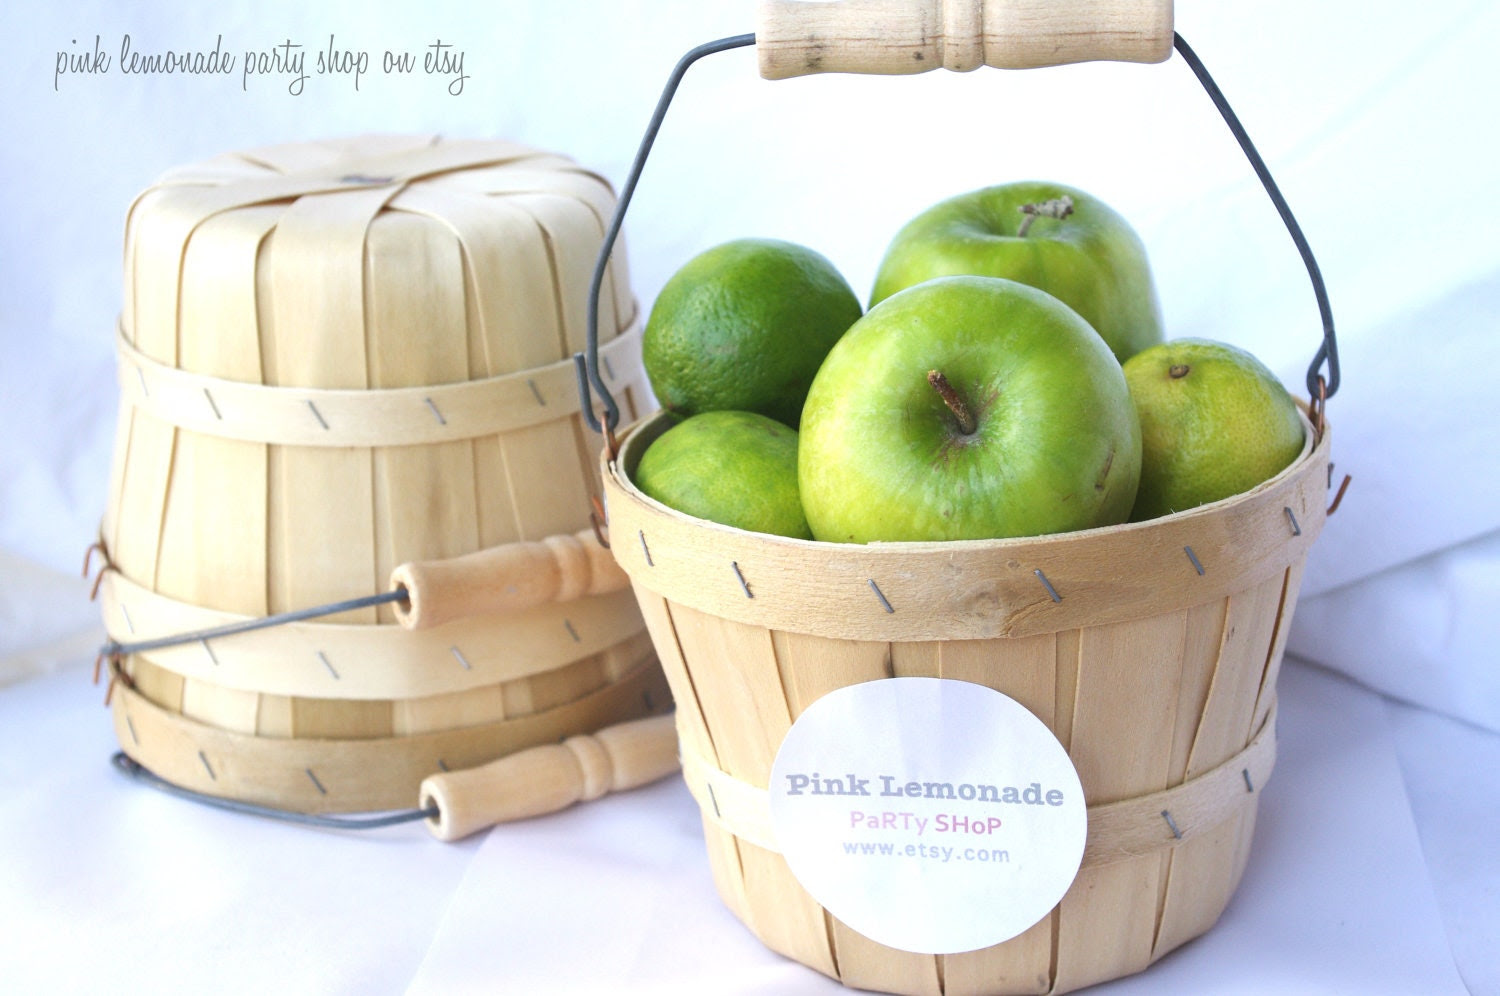 MiNi APPLe BaSKeTS-set of 3-ADorable birch wood baskets with handles--party favors-weddings-centerpieces--add labels or twine - pinklemonadeparty